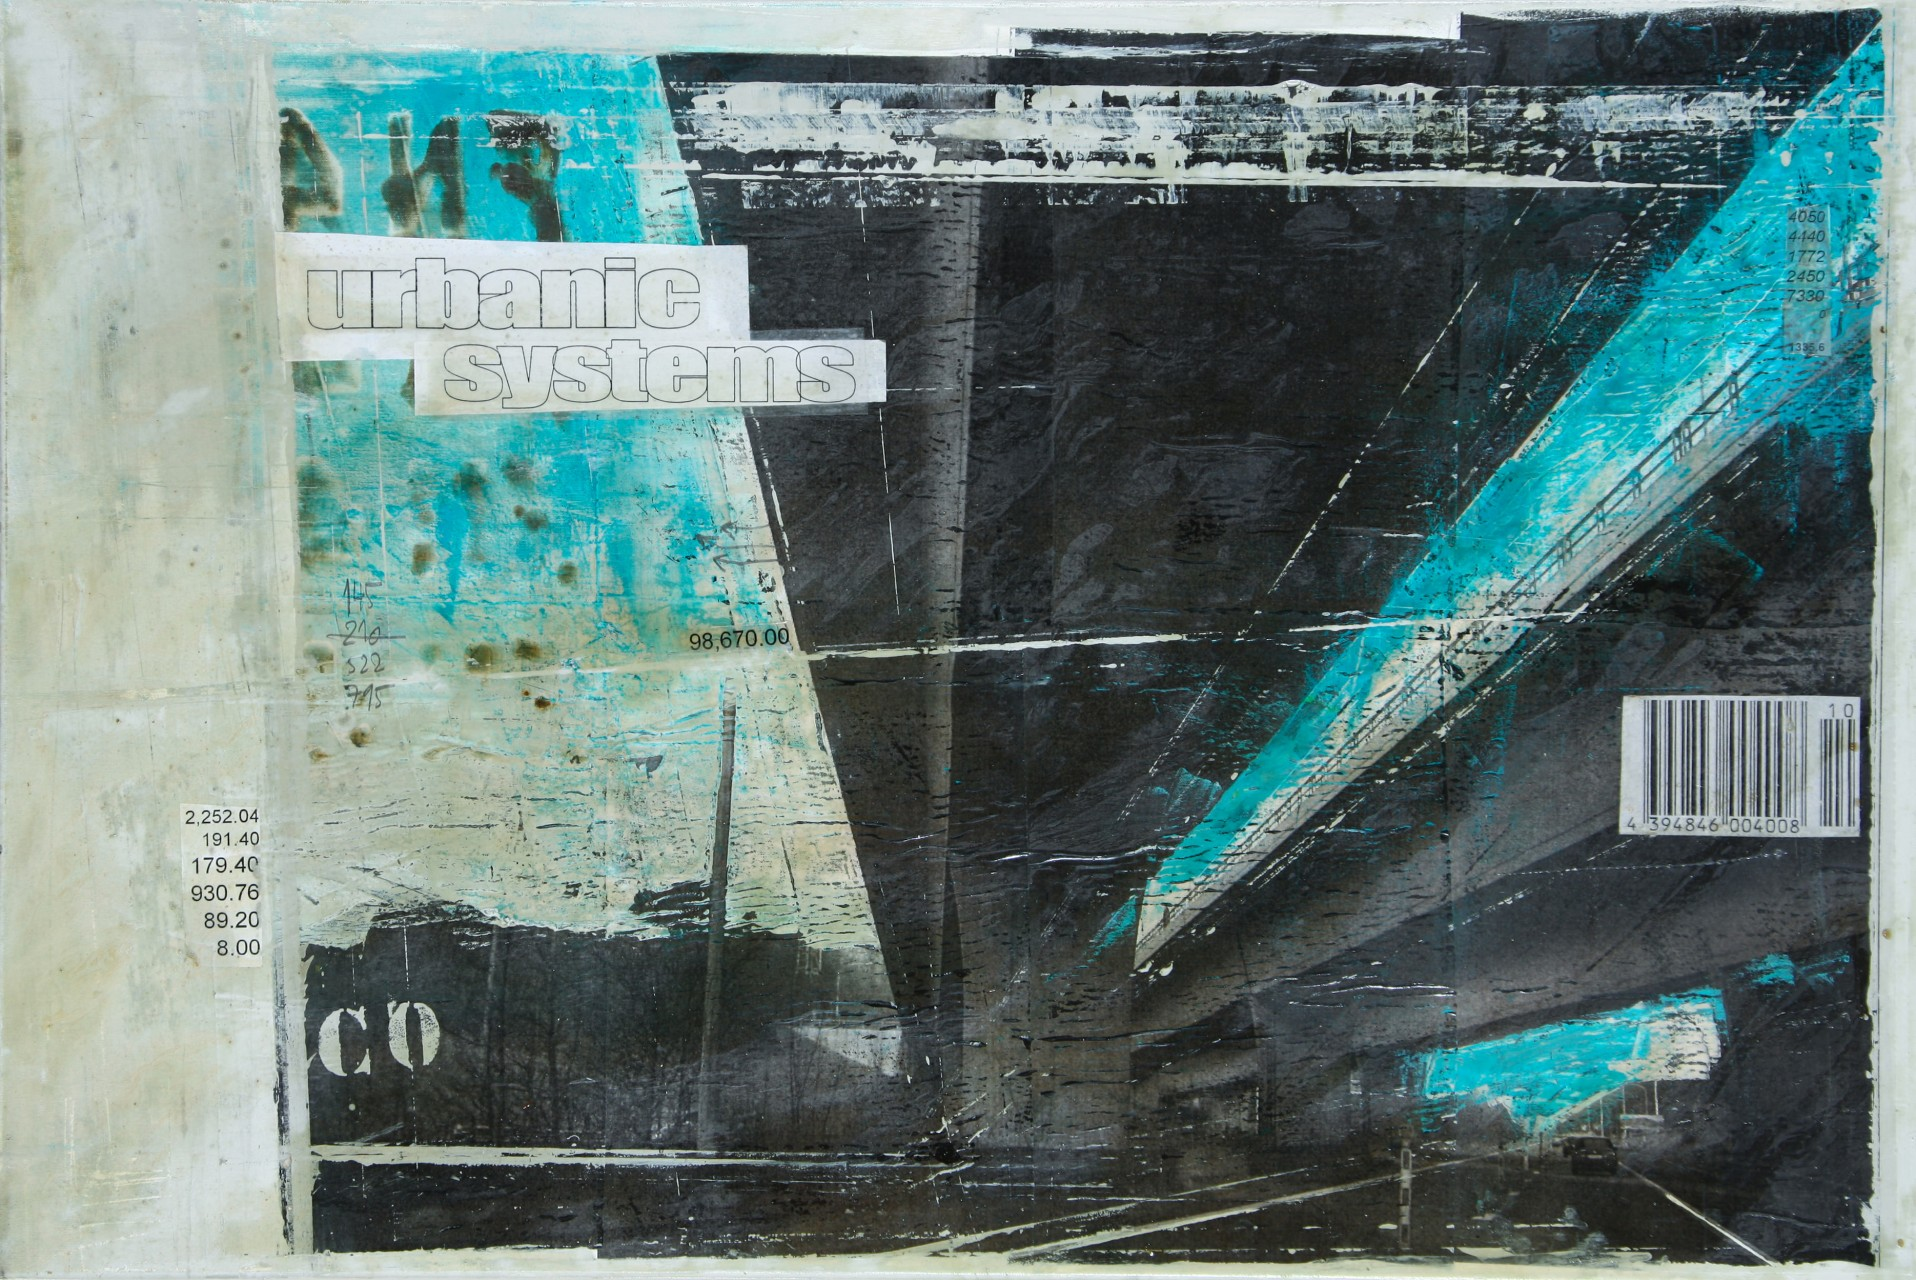 Interchanges - Namur (B) - collage photo, huile, acrylique sur toile - 80 x 120 cm - 2012